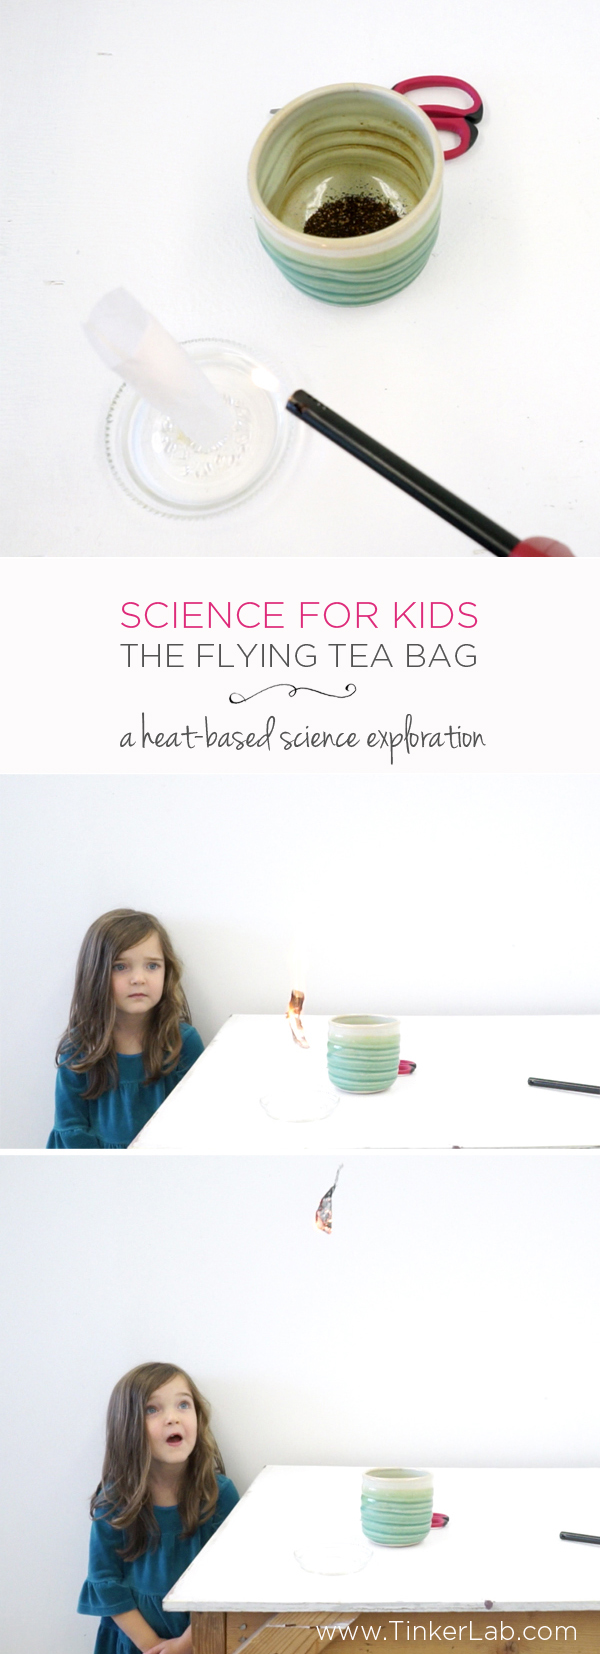 Science for kids | The simple flying tea bag exploration with materials you probably already have at home